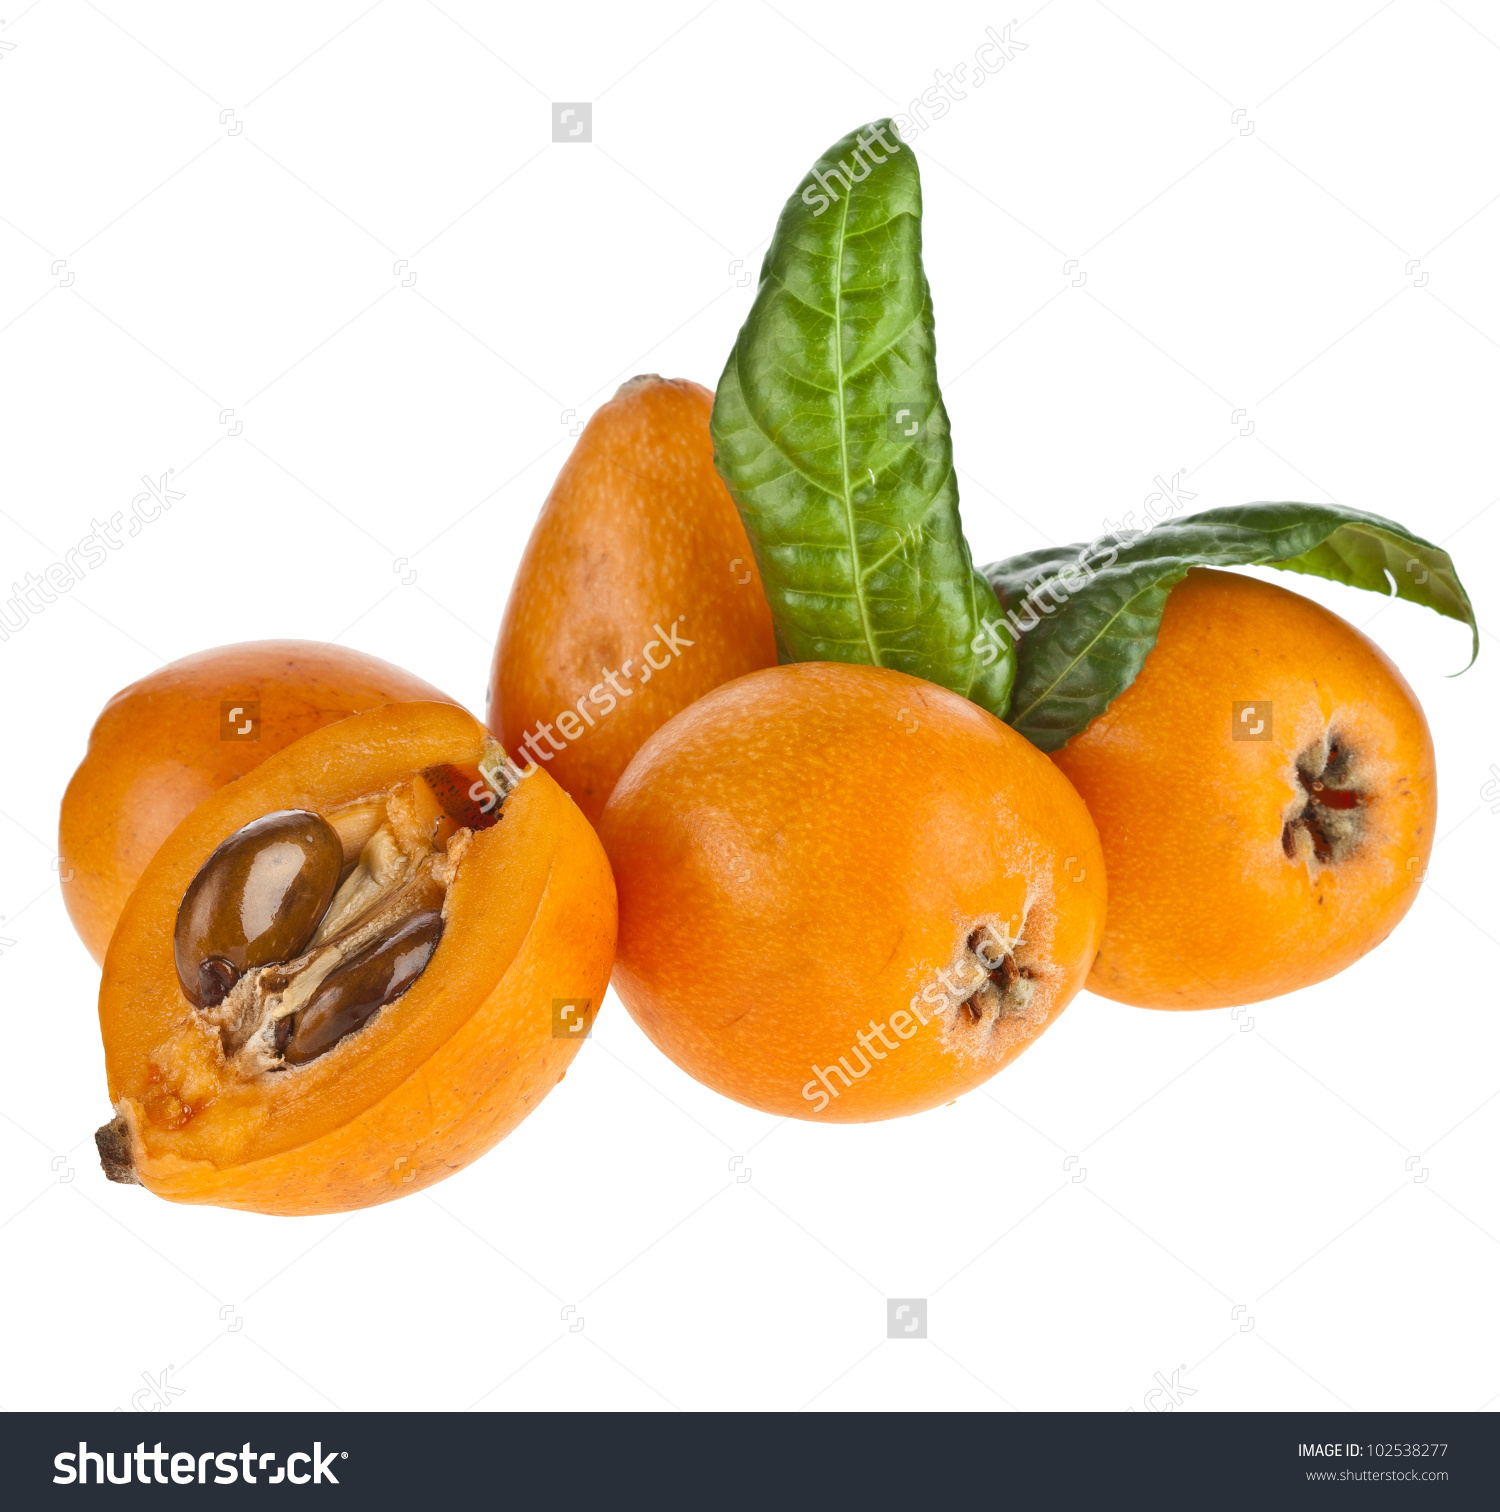 Loquat Medlar Fruit Isolated On White Stock Photo 102538277.